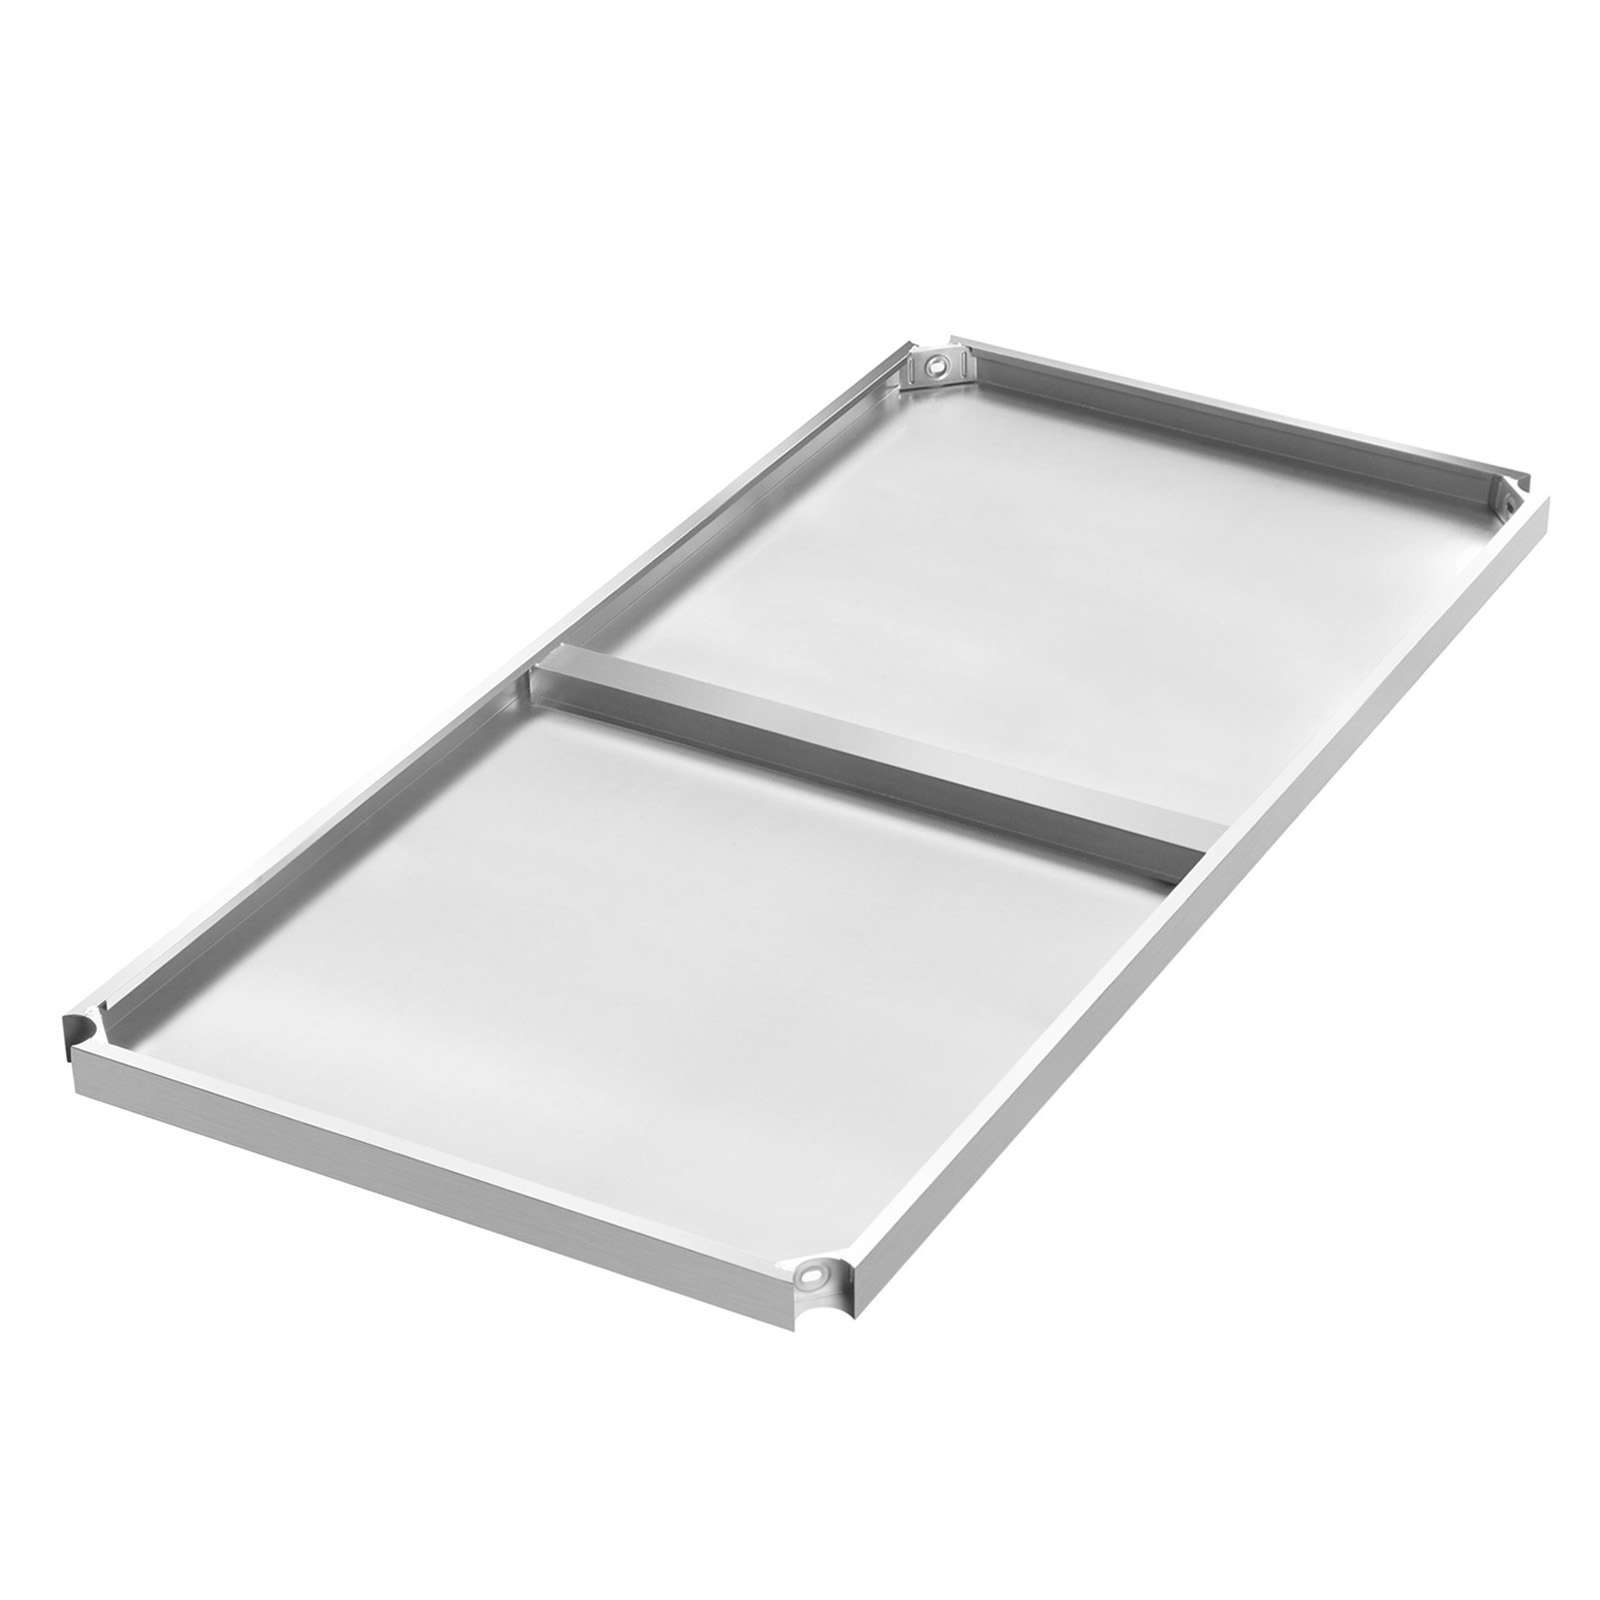 Details about stainless steel commercial kitchen work prep table 30 quot x